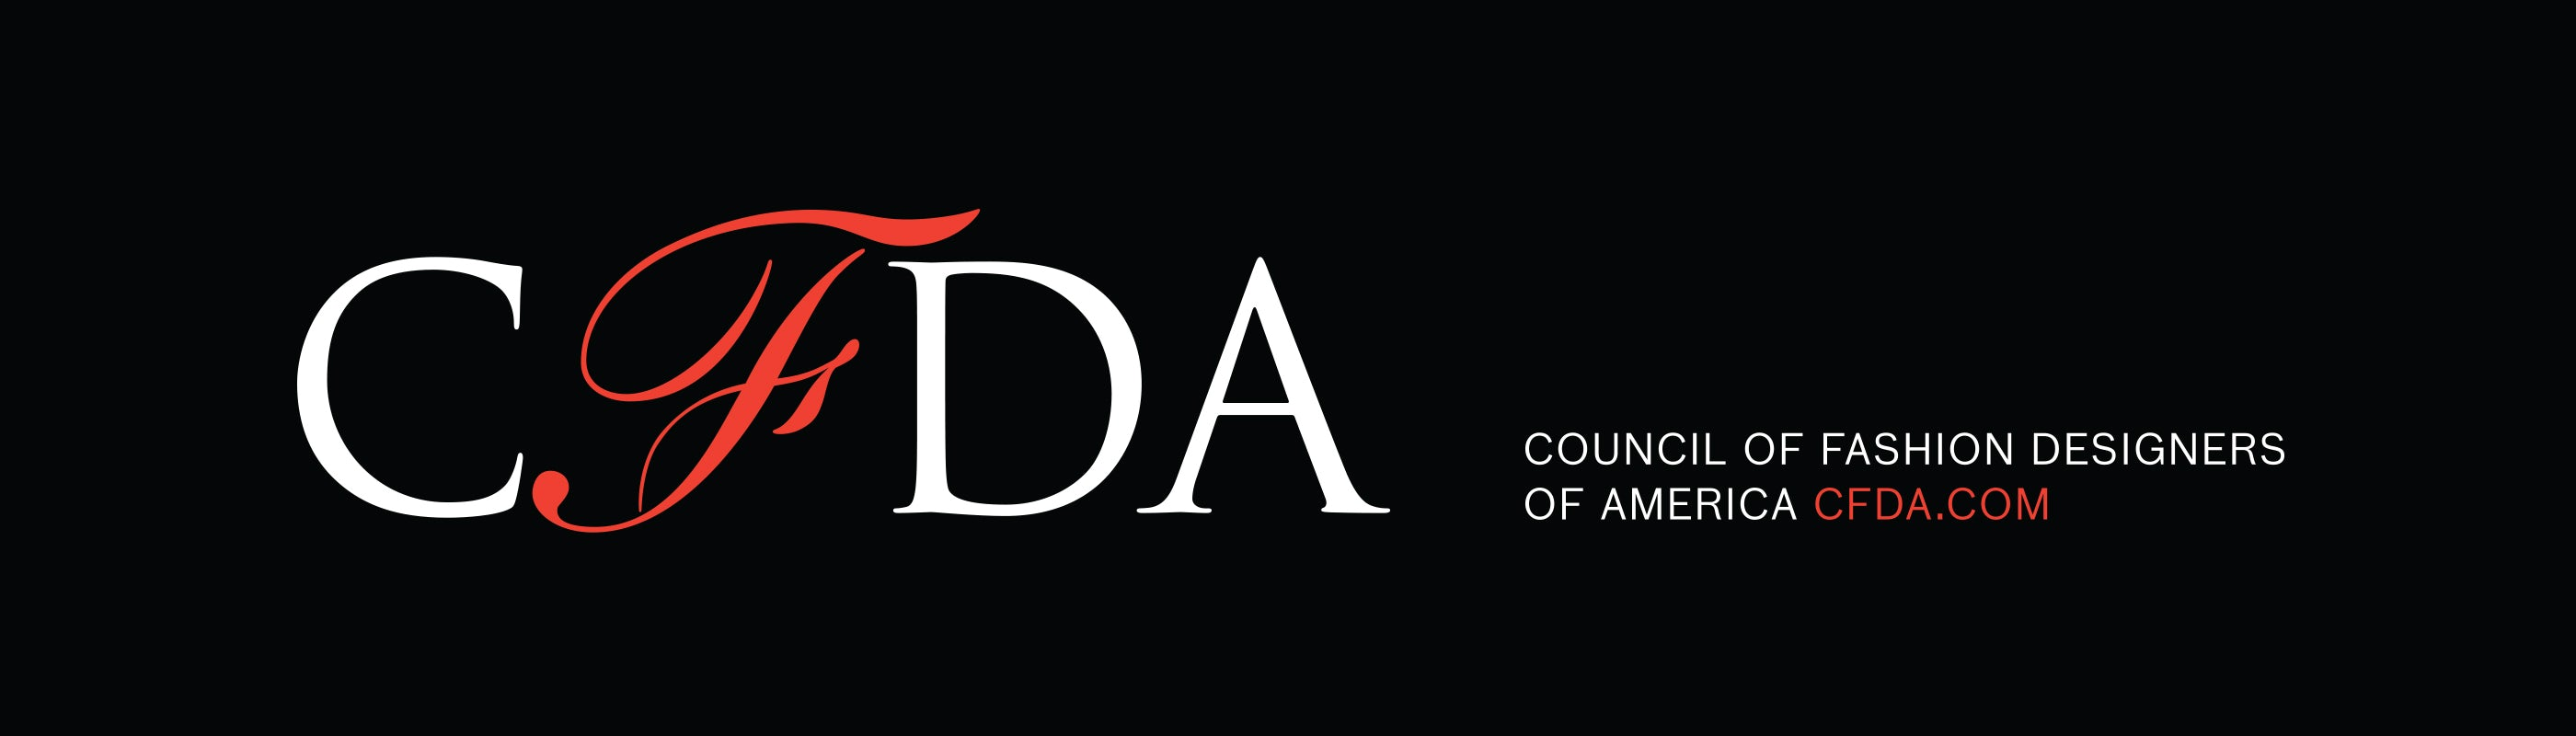 Profile image for Council of Fashion Designers of America